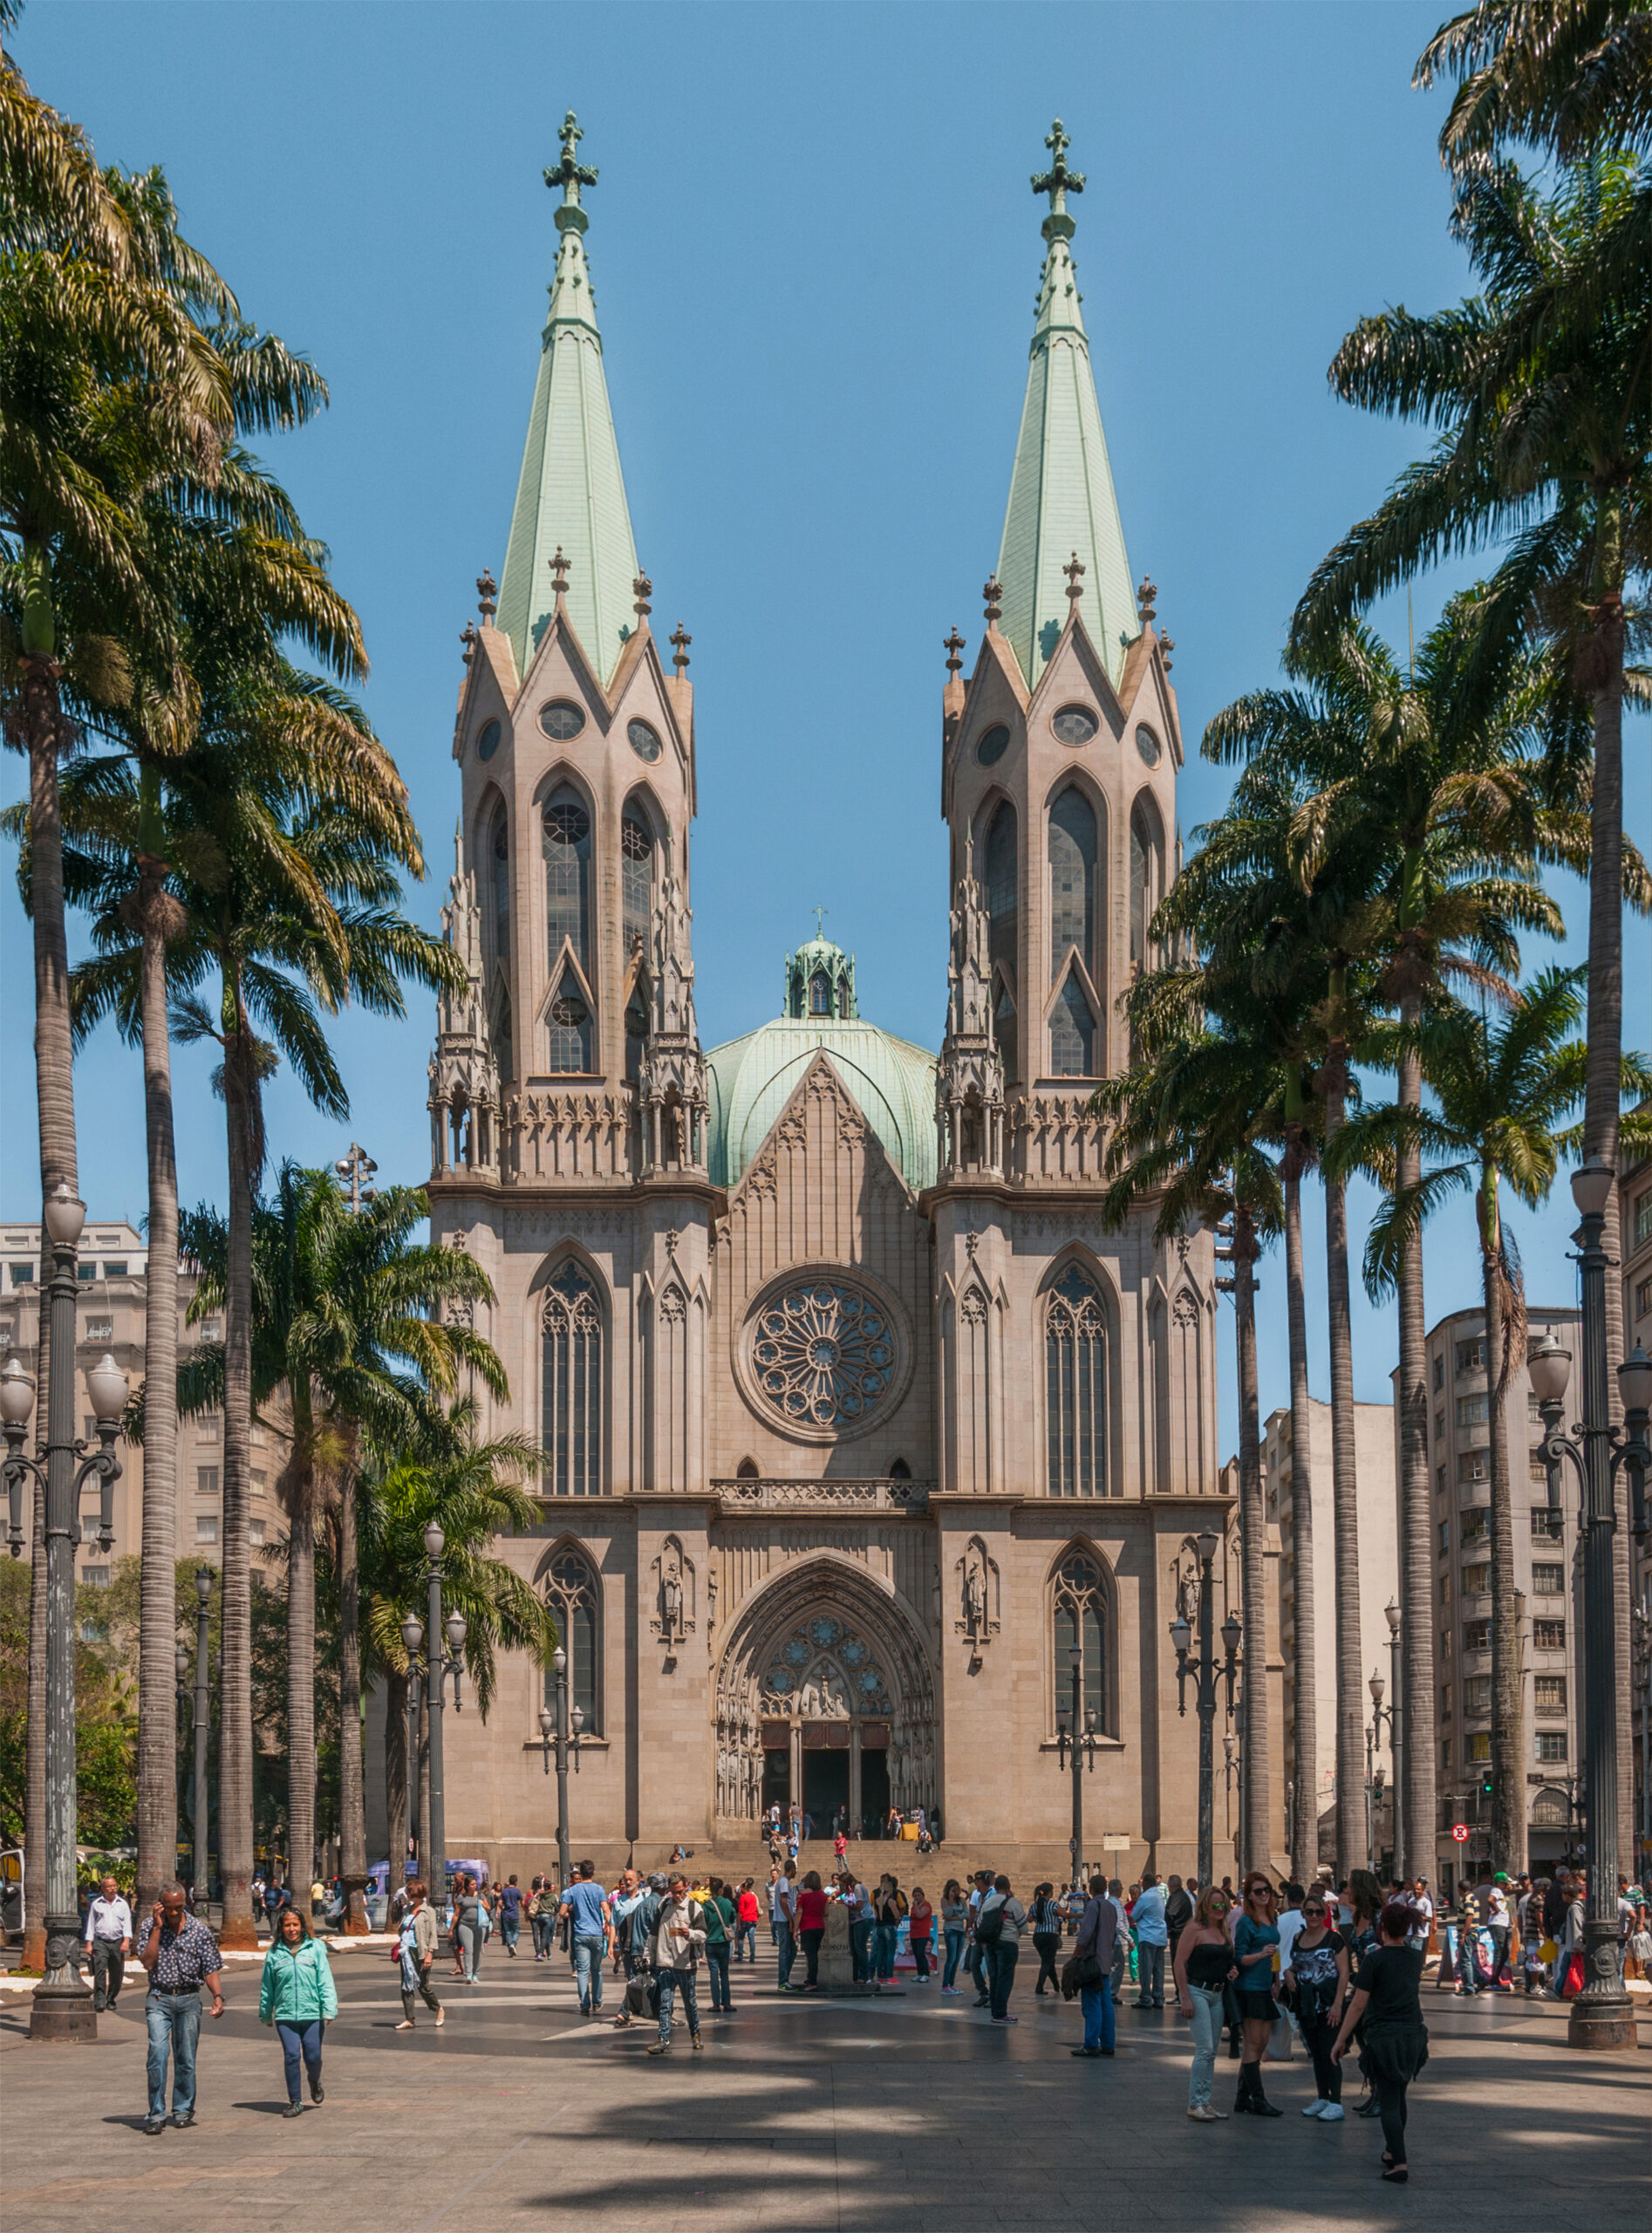 trip to cathedral|cathedrals travel planner app